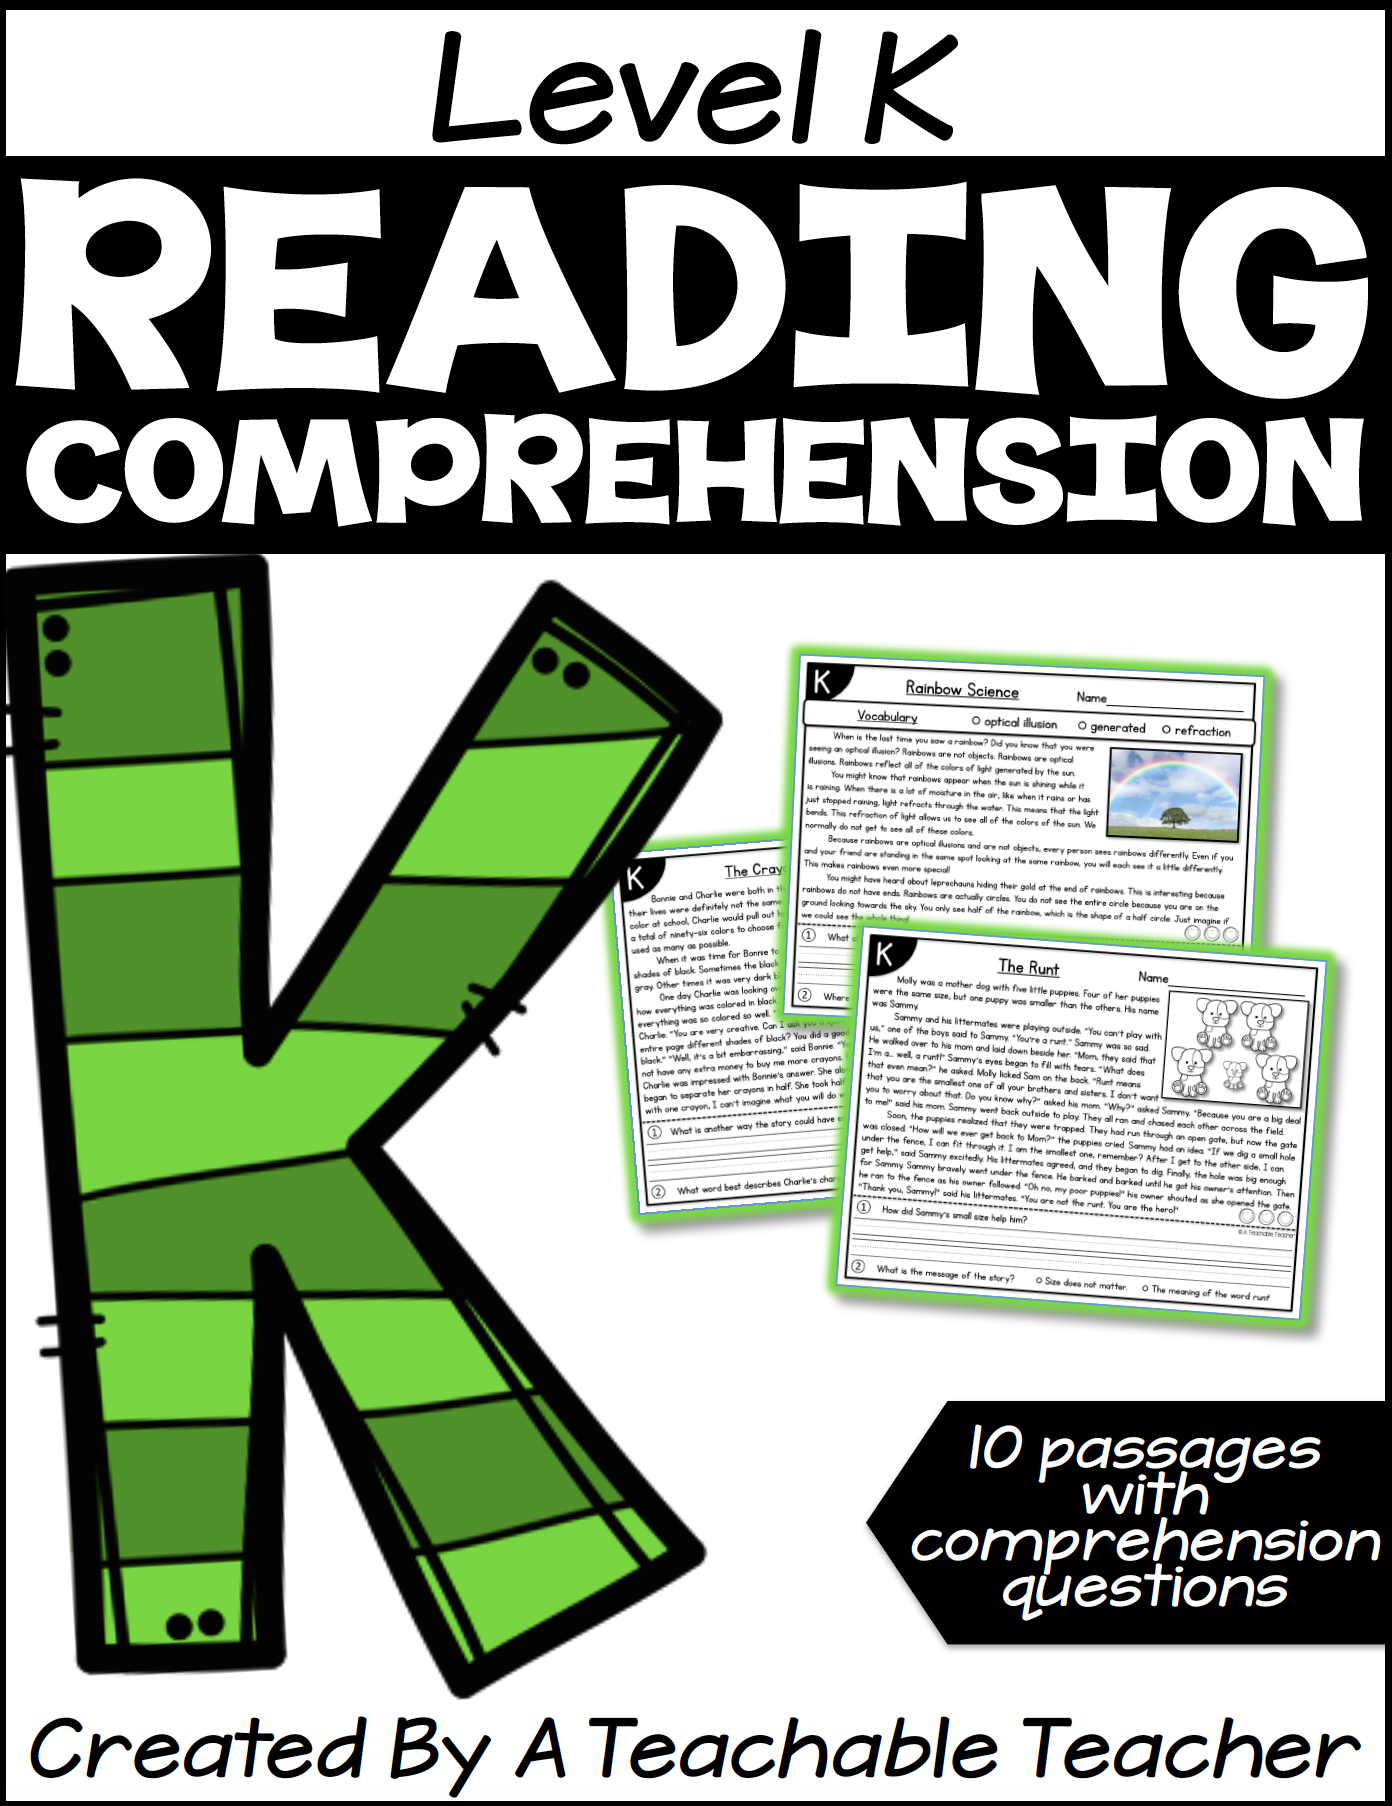 - Level K Reading Comprehension Passages And Questions - A Teachable